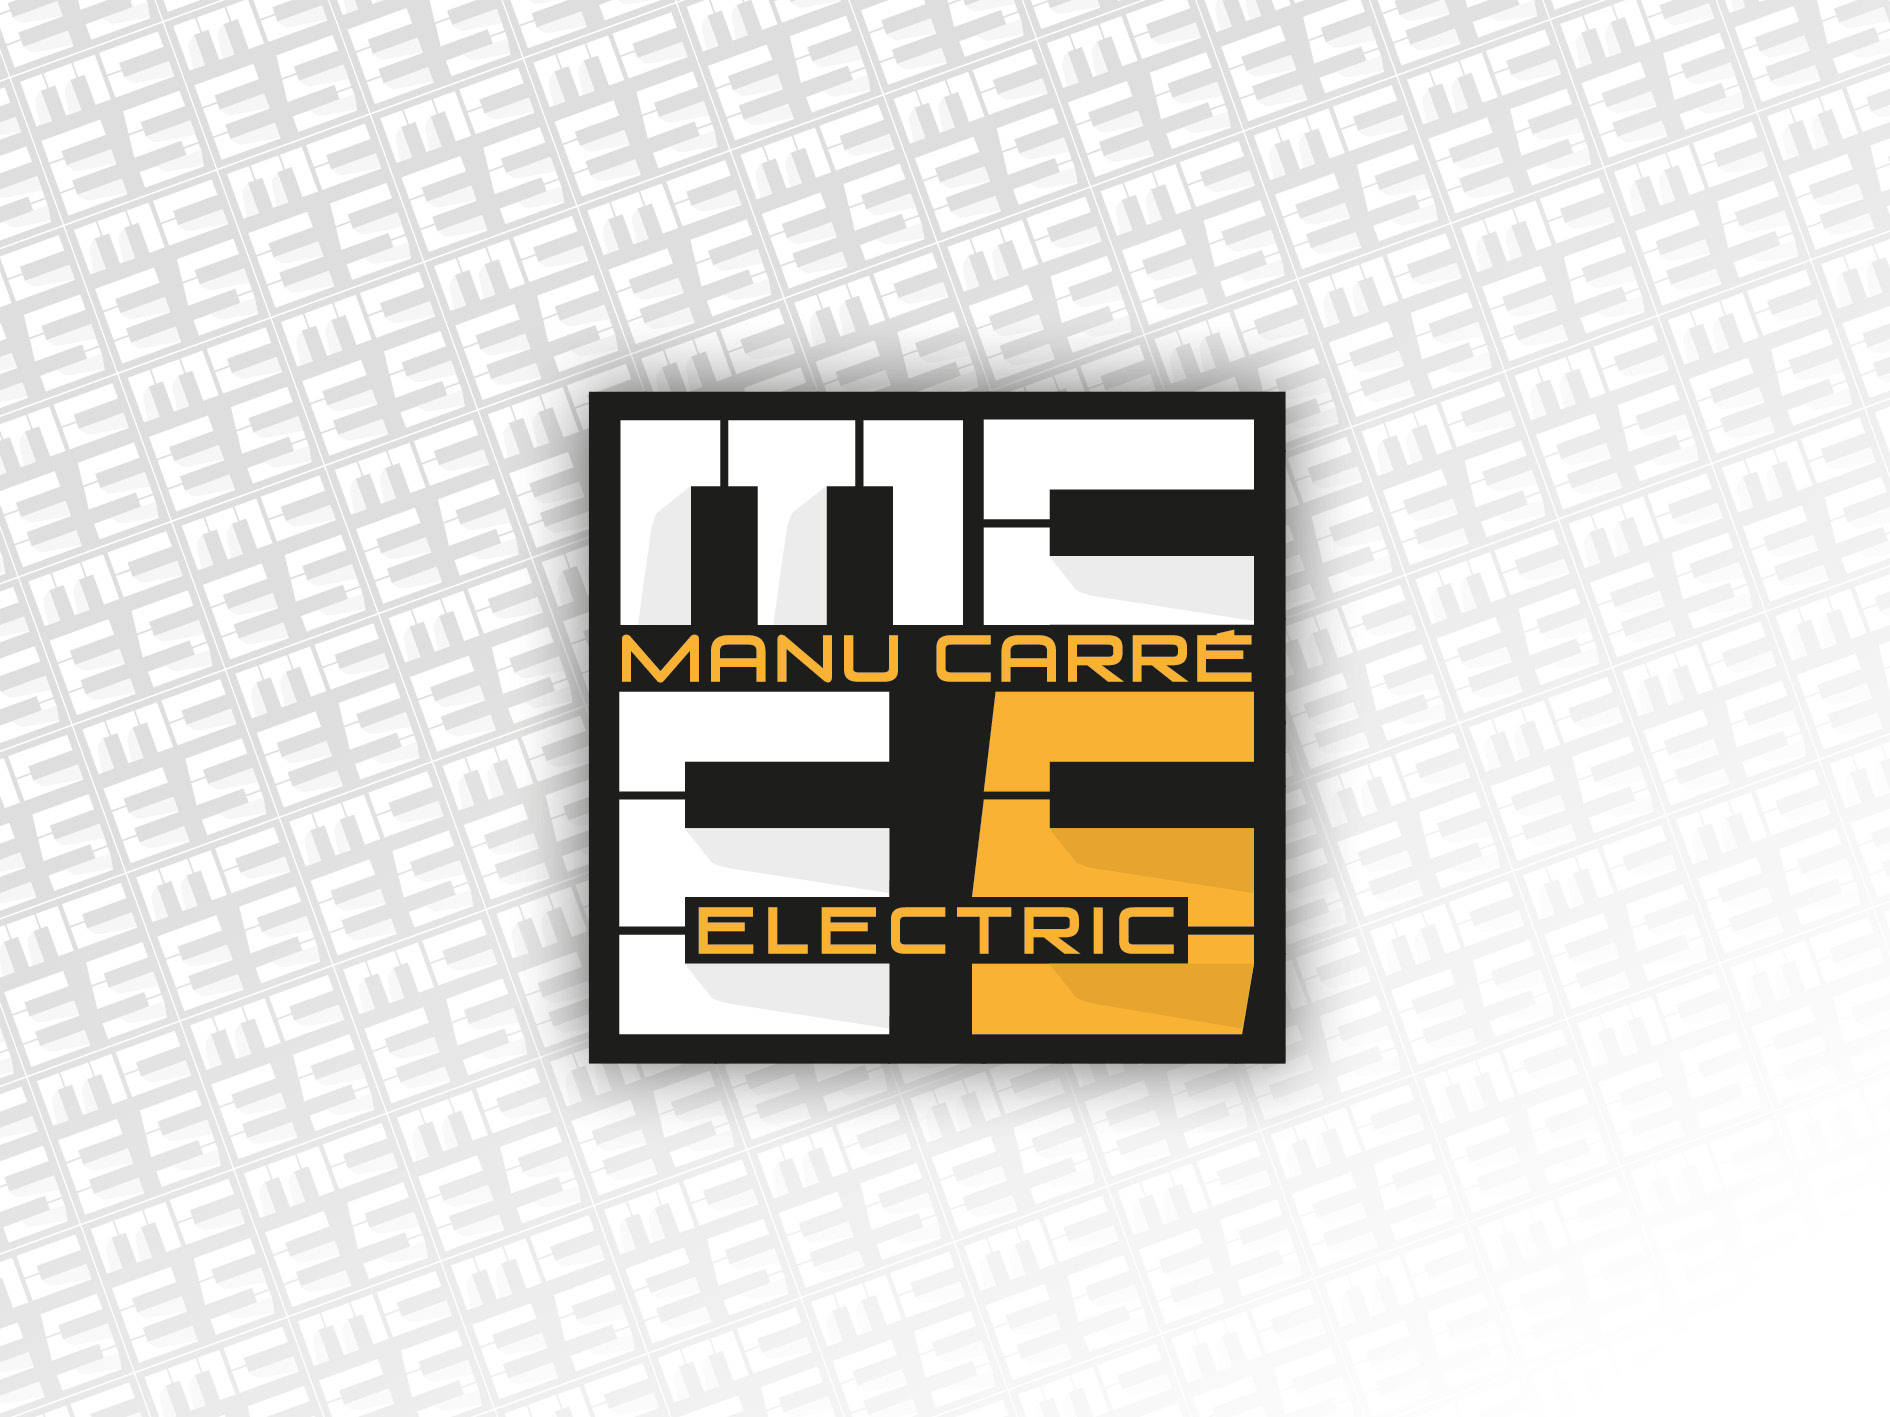 Manu Carré Electric 5